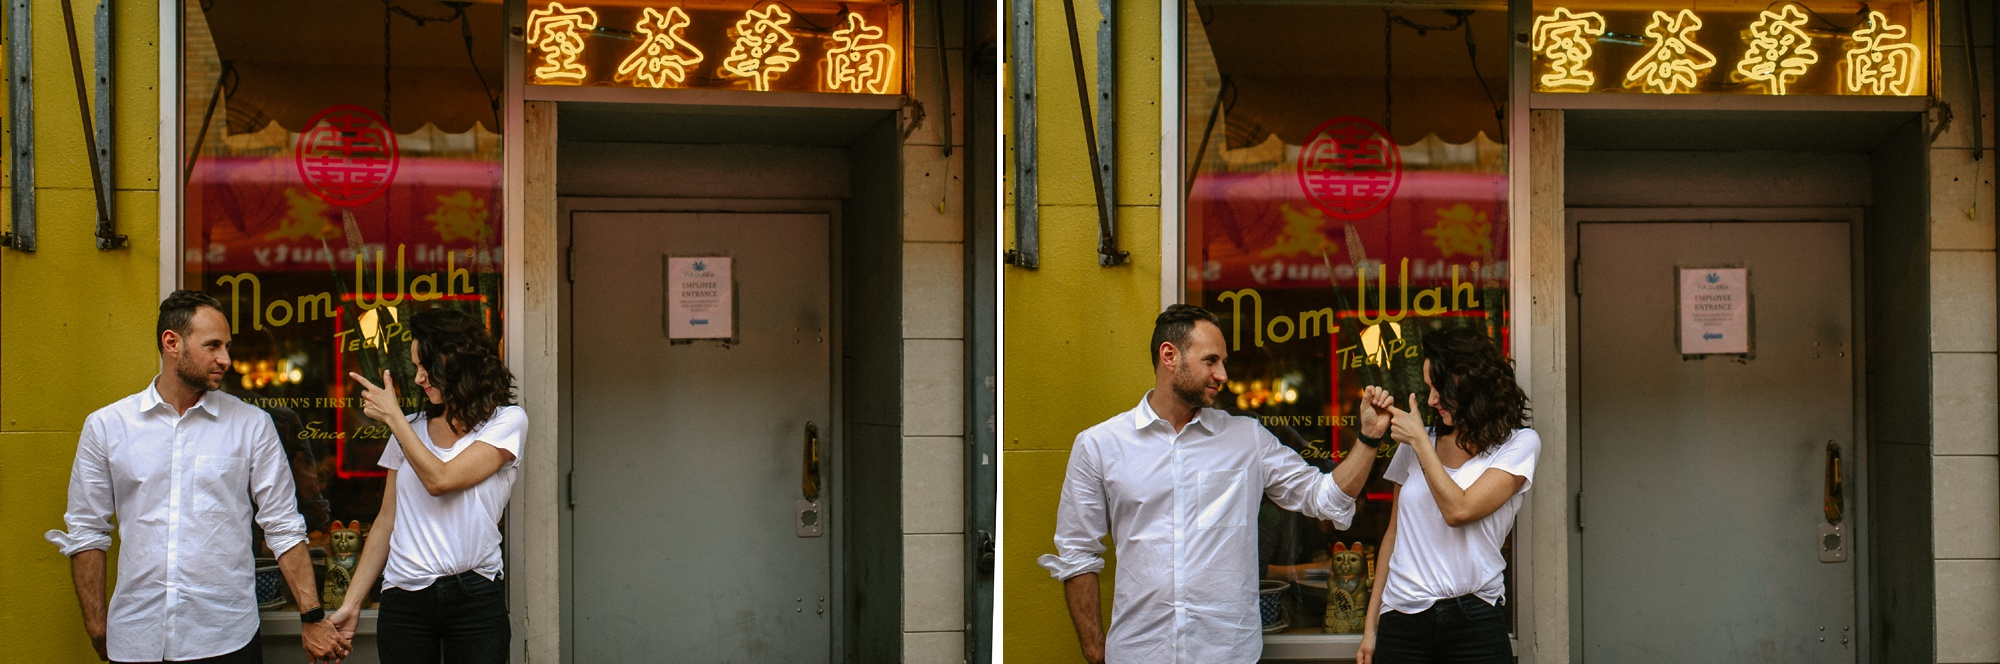 chinatown engagement session